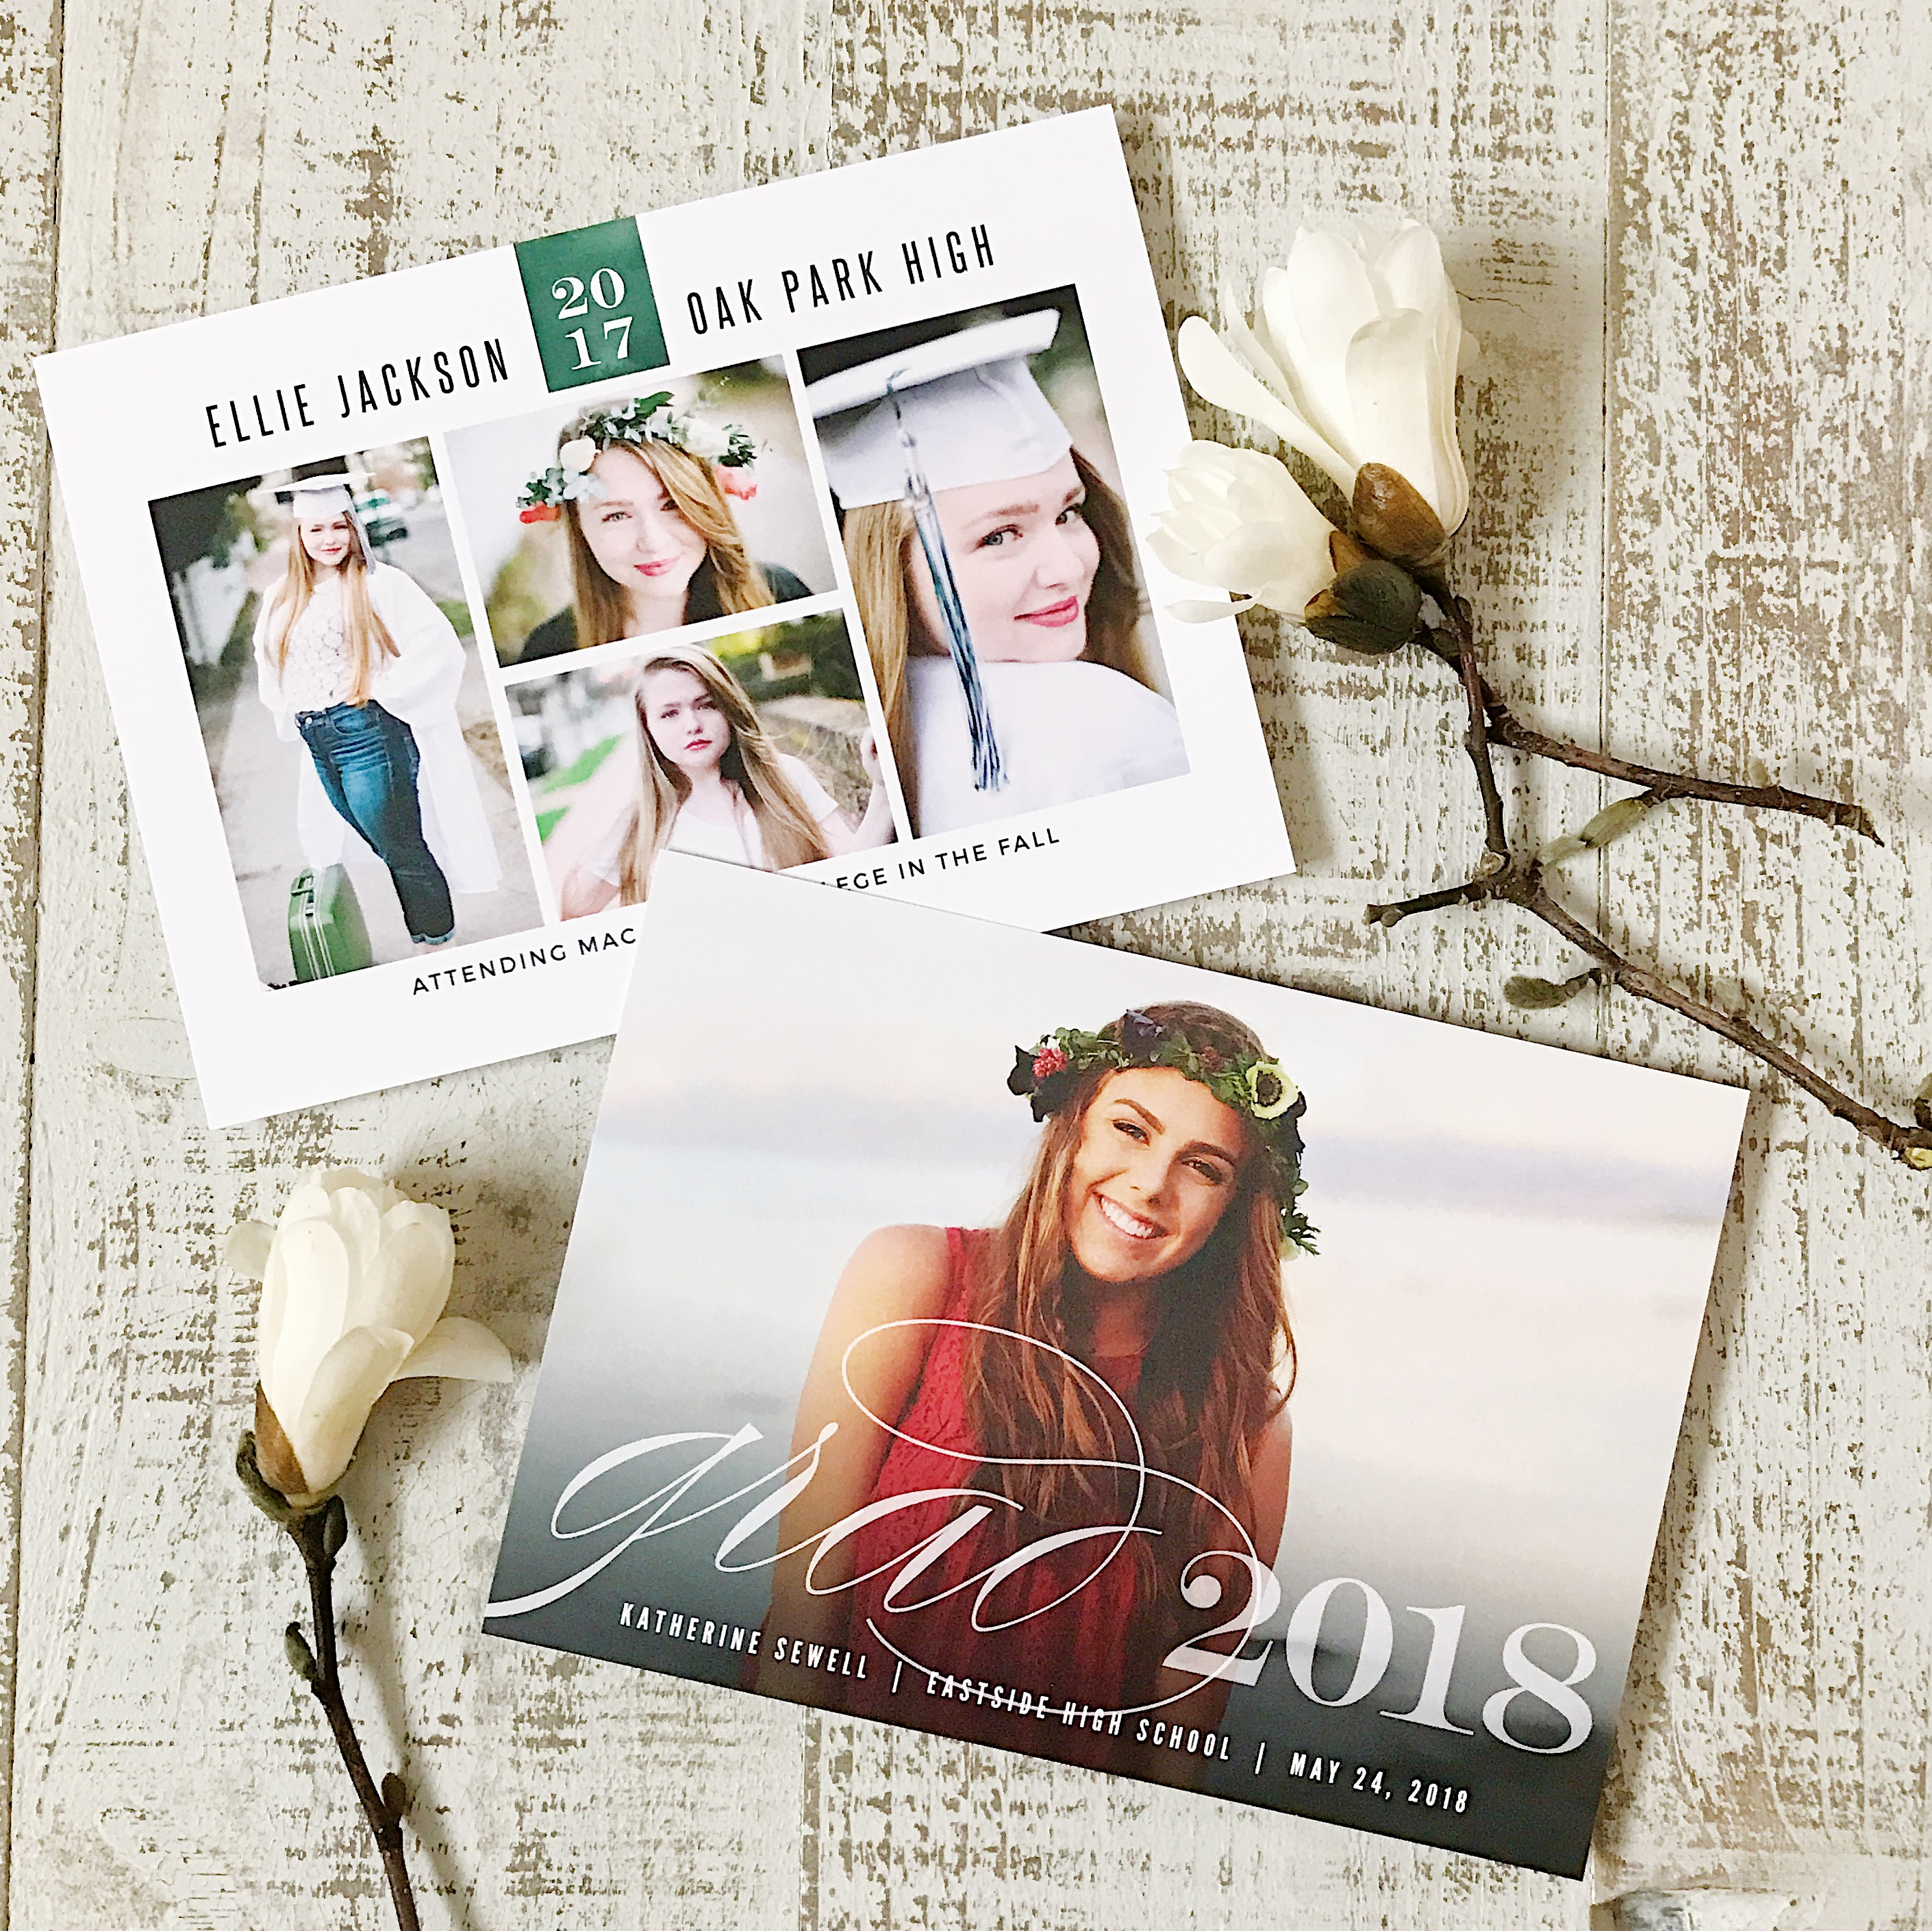 Quick and easy ideas for creating memorable graduation invitations it starts with creating a memorable graduation announcement invitation and graduation thank you cards for your graduate to use keeping in mind that these filmwisefo